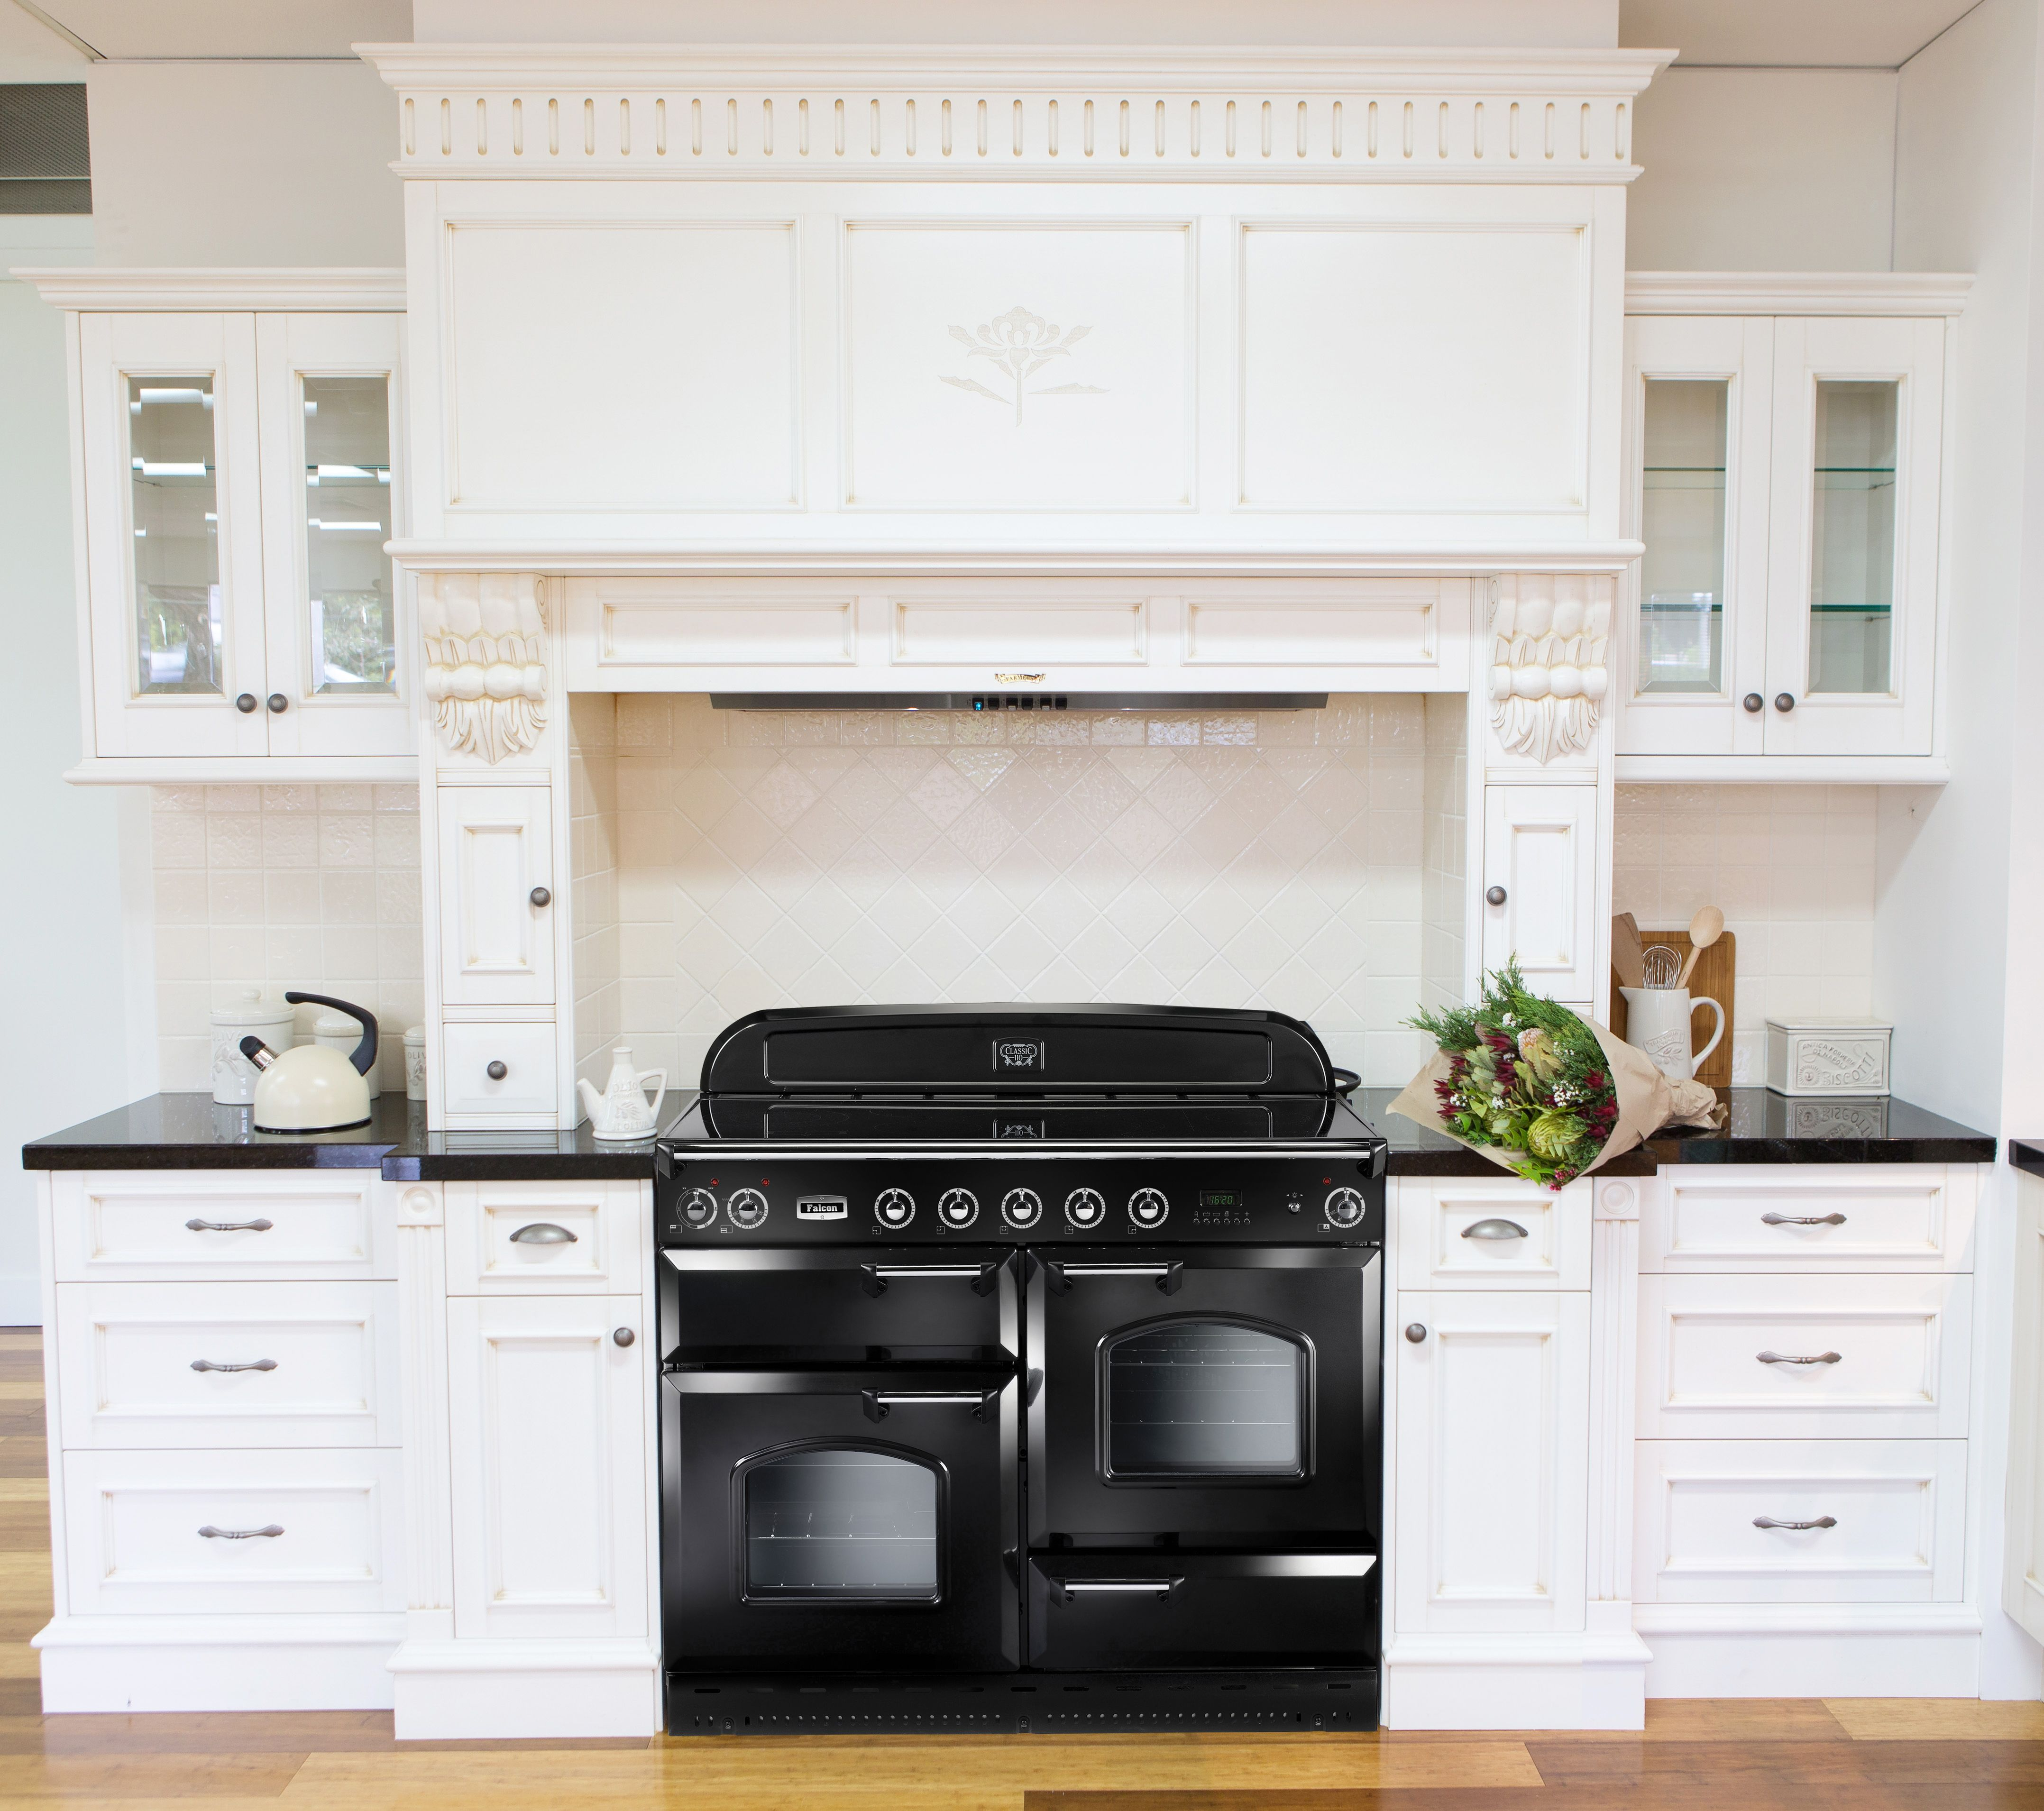 Falcon Classic 110cm Induction Upright Range Cookers Feature Five White Cream In Cooker Cooking Zones Double Electric Side Opening Ovens A Separate Grill And